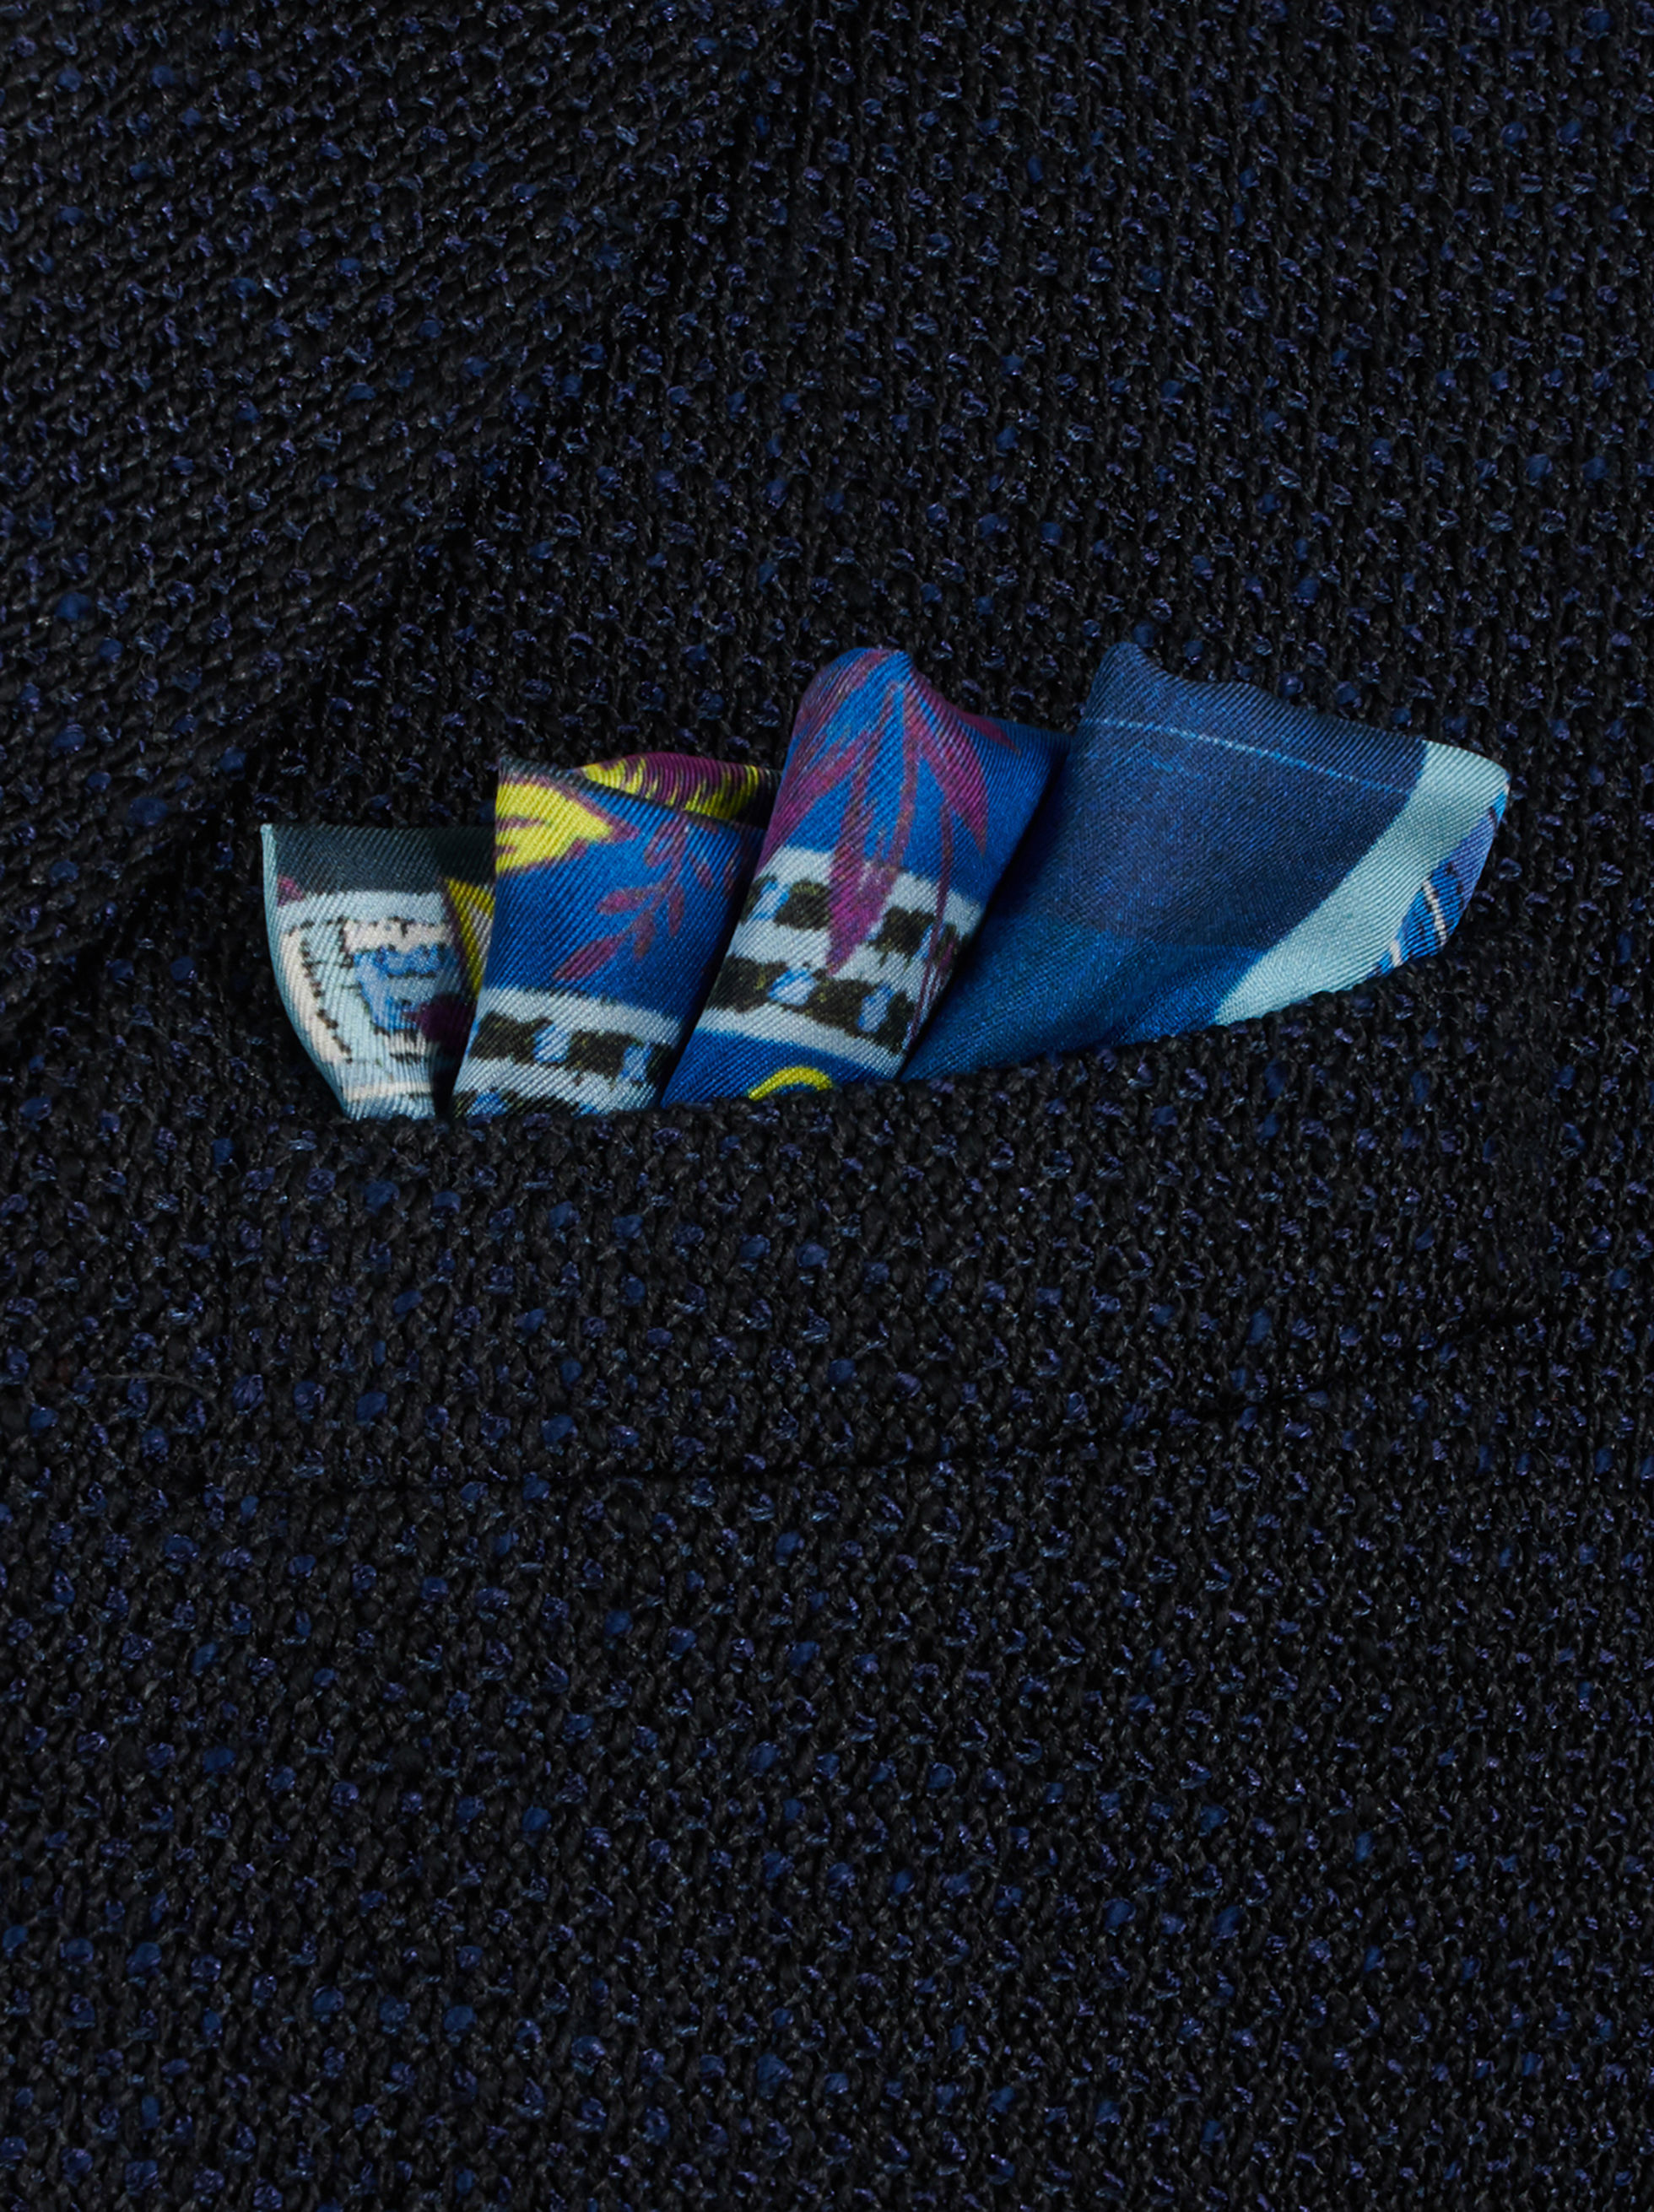 PATCHWORK POCKET SQUARE WITH FLOWERS